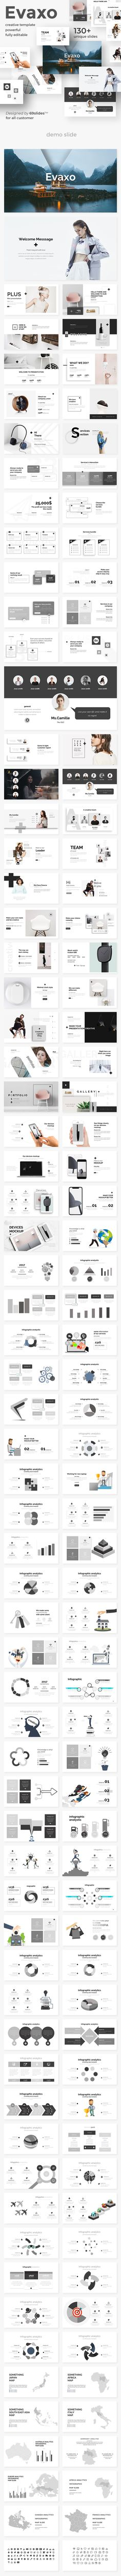 Evaxo Creative Powerpoint Template